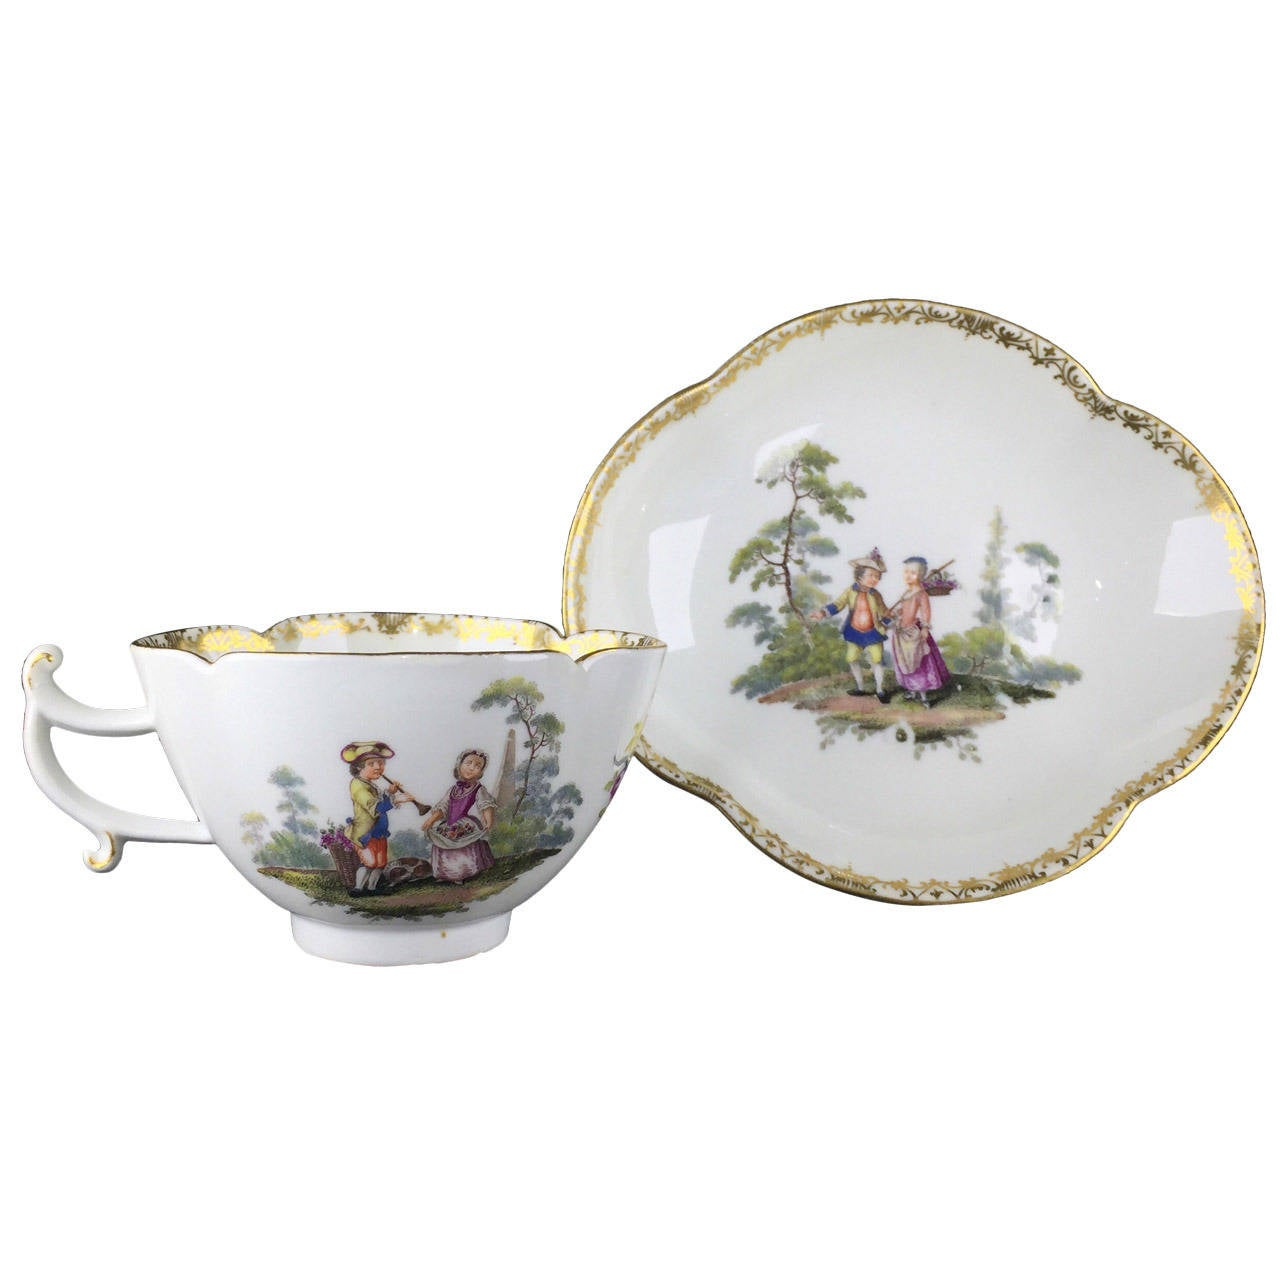 Meissen Quatrefoil Shape Cup and Saucer with Children, circa 1745